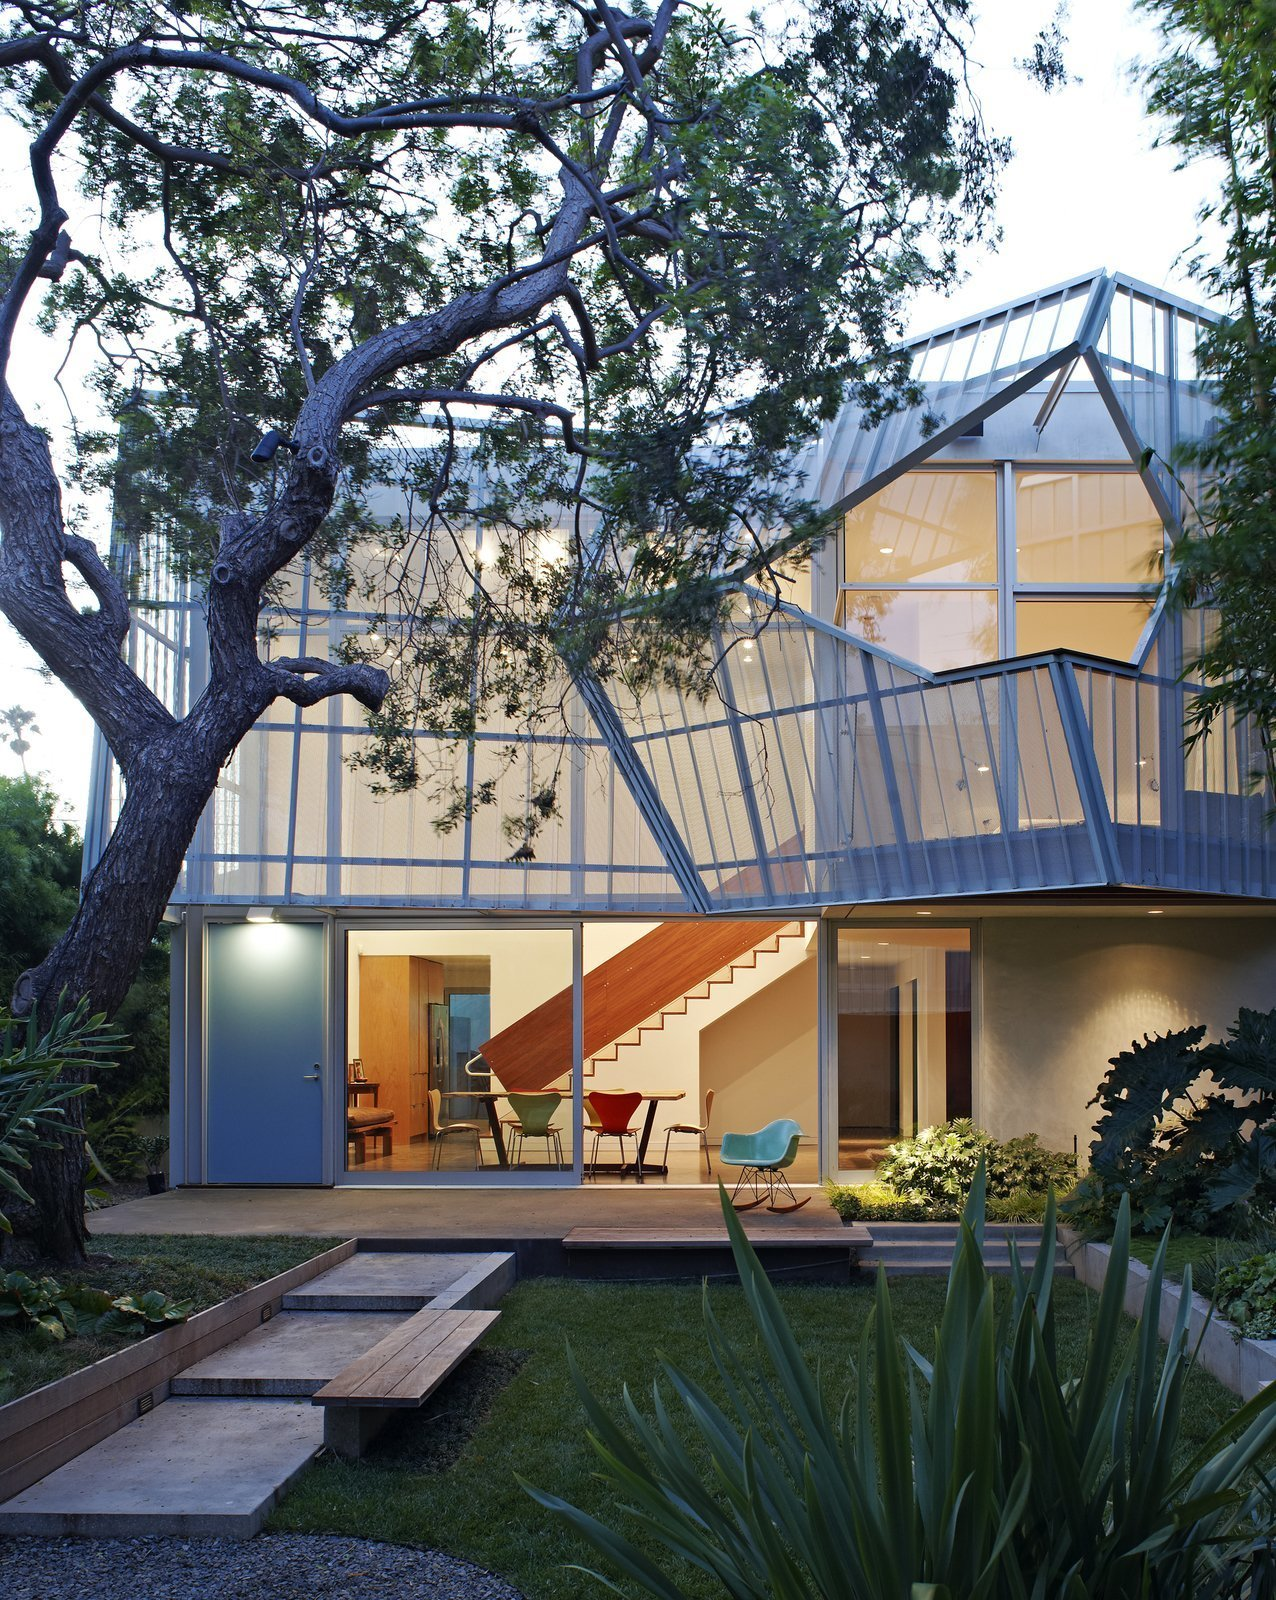 Exterior, House Building Type, and Metal Siding Material Kevin Daly Architects created a geometric perforated, folding metal skin supported by an aluminum exoskeleton, which shades the two-story glazed courtyard-facing façade of this home in Venice, California.  Photos from 9 Best Homes With Interesting Screened Facades